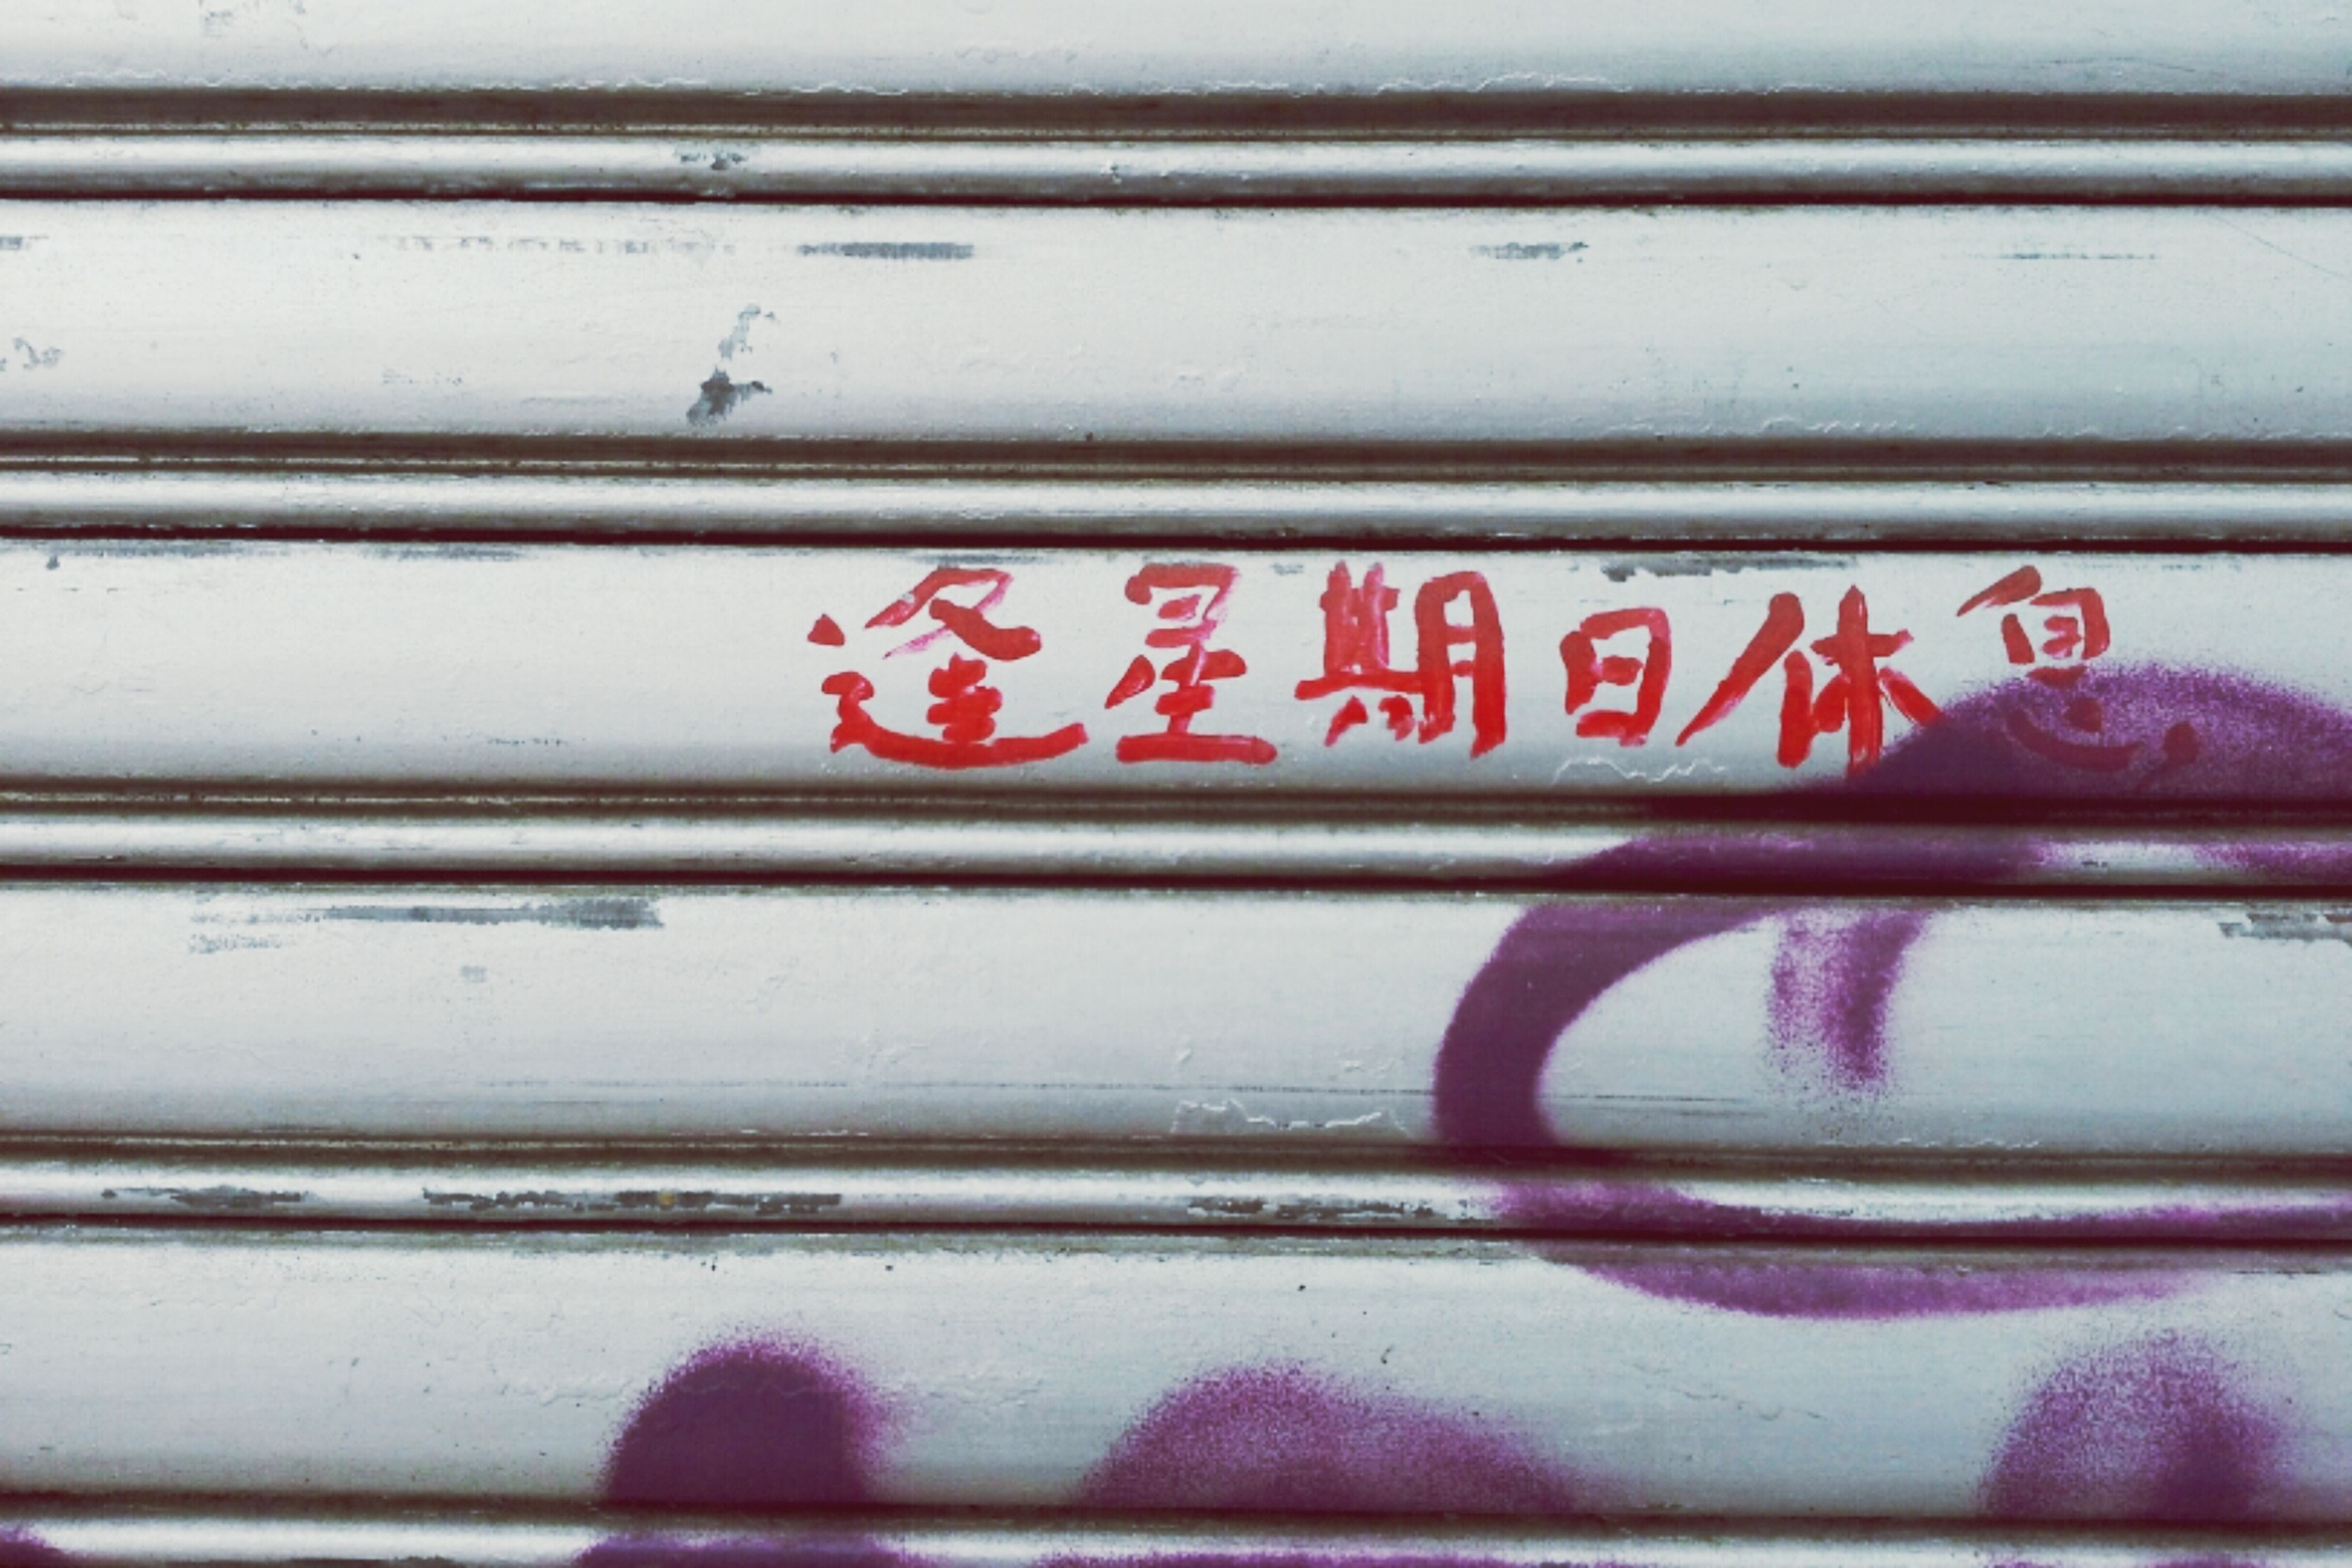 text, western script, close-up, communication, metal, wall - building feature, indoors, metallic, red, capital letter, wall, no people, graffiti, rusty, day, pink color, door, number, detail